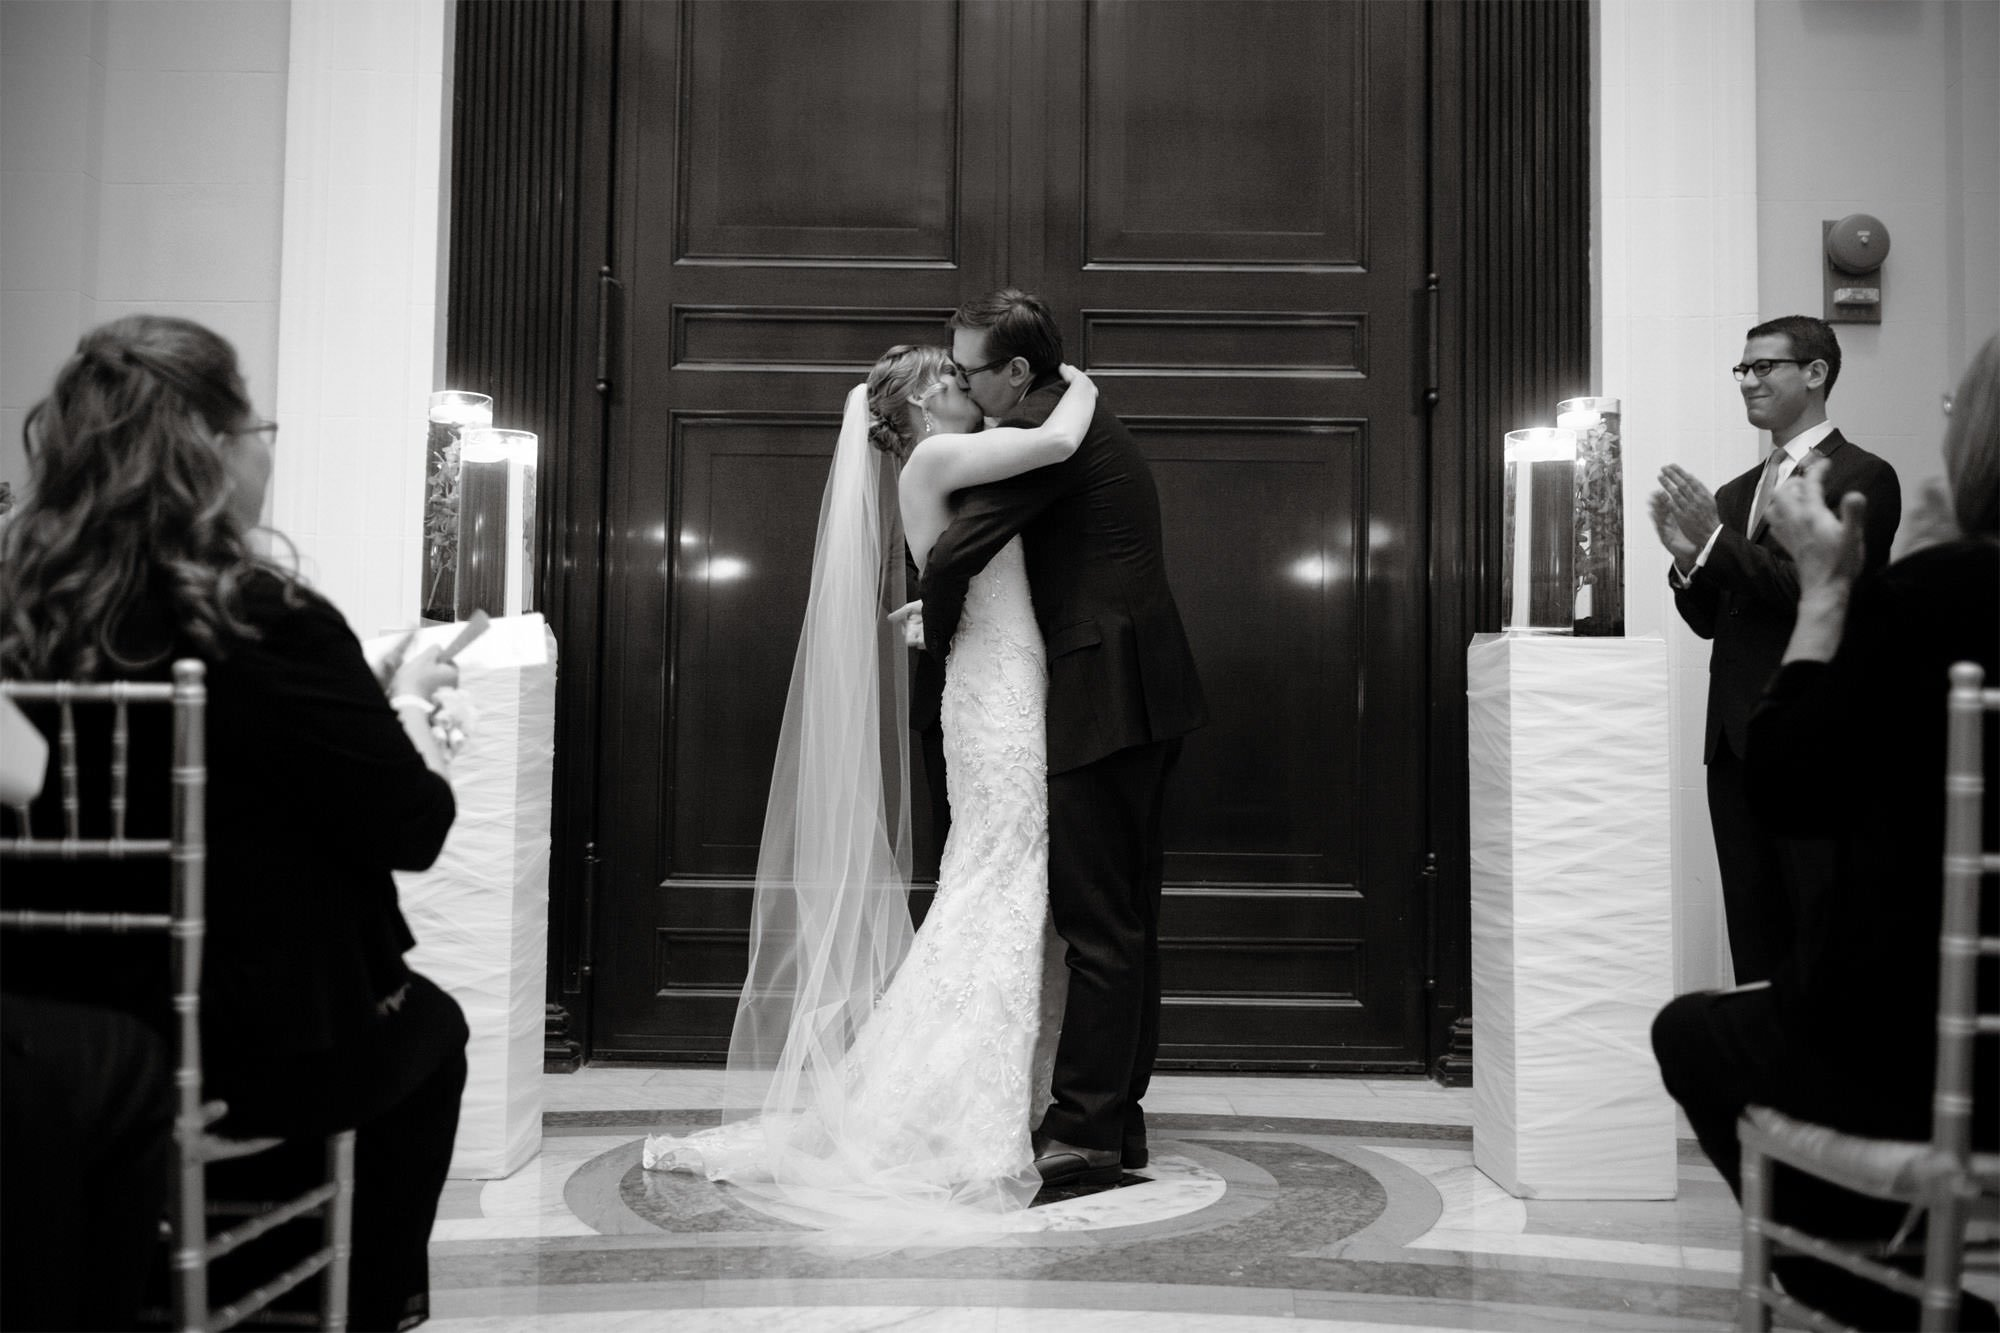 The bride and groom share their first kiss as husband and wife during the Carnegie Institute for Science Wedding ceremony.